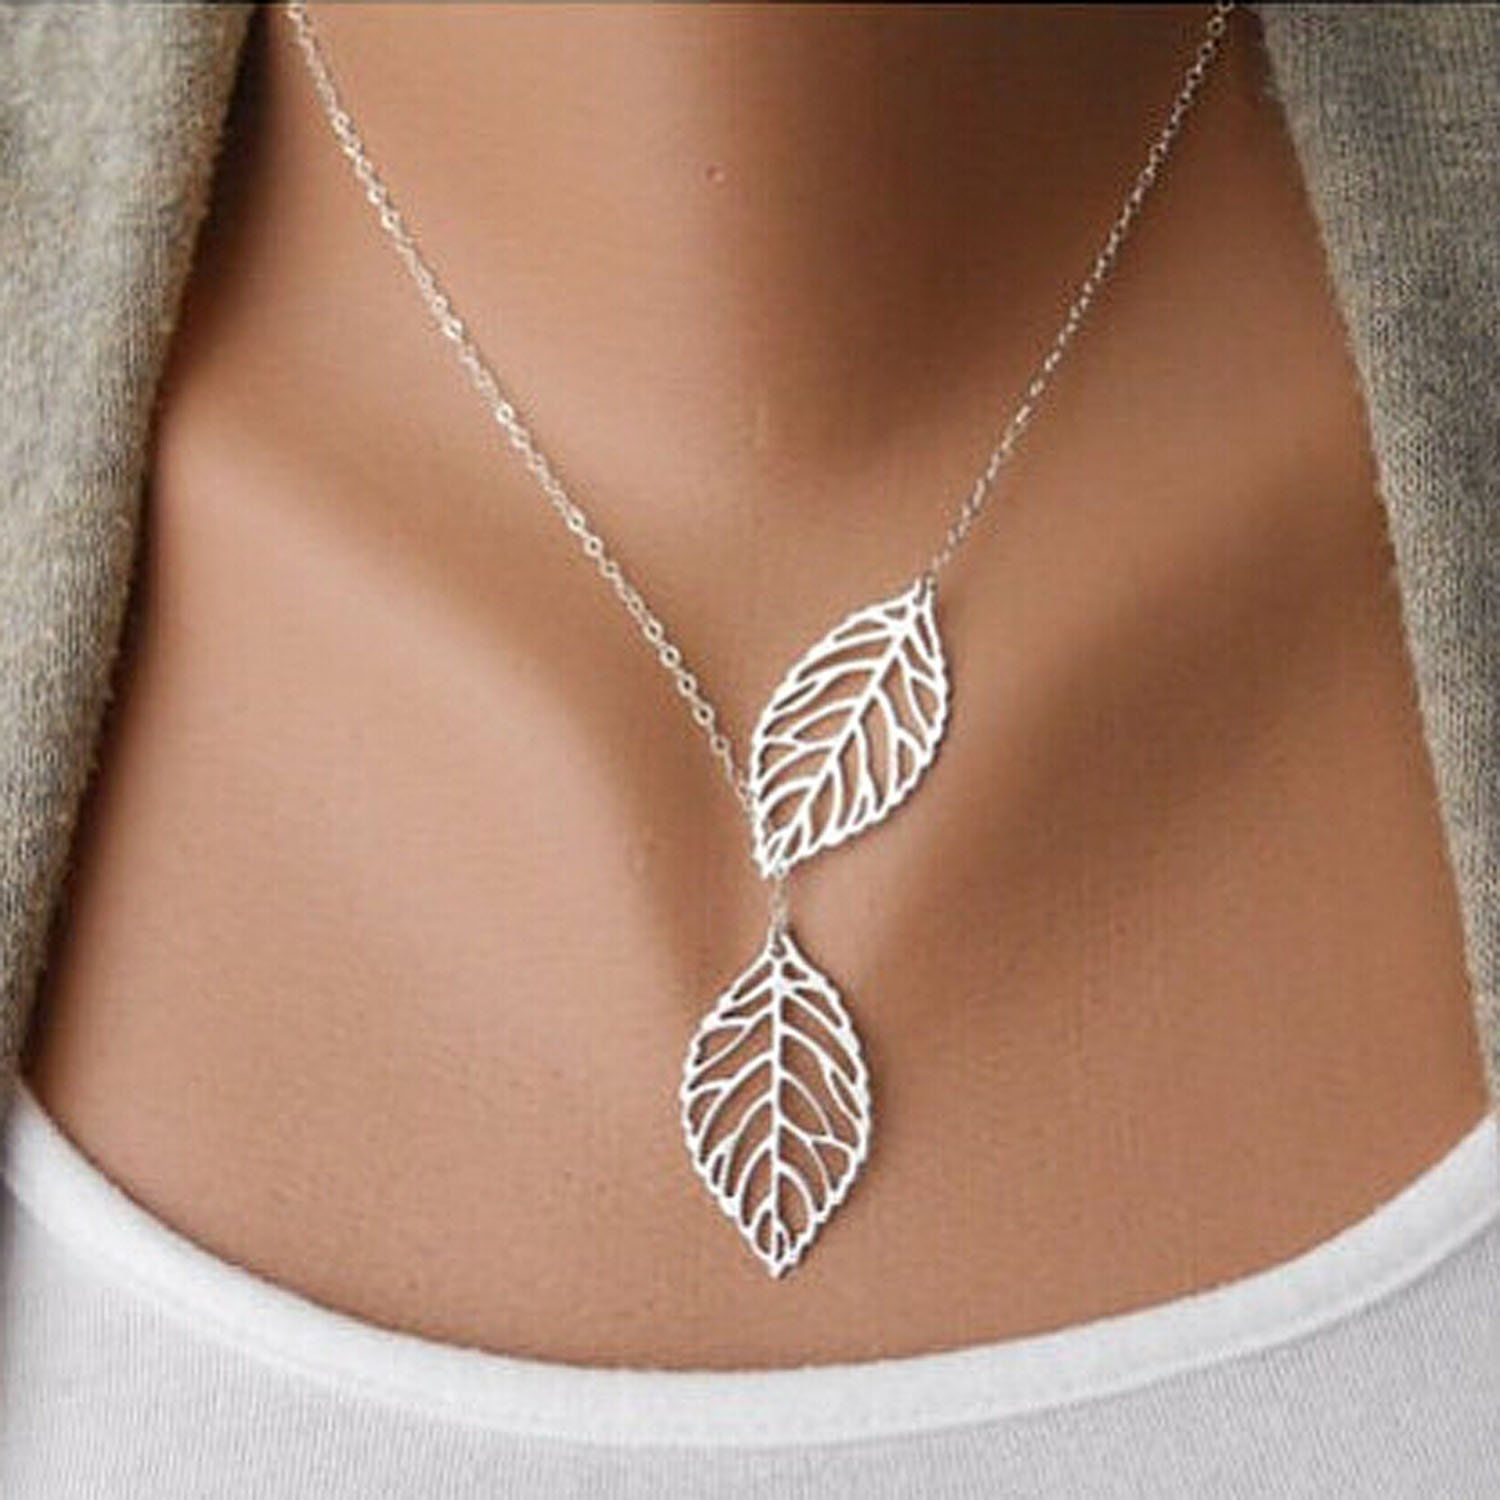 Aukmla Chic Leaf Shaped Chain Jewelry Necklaces for Women ...